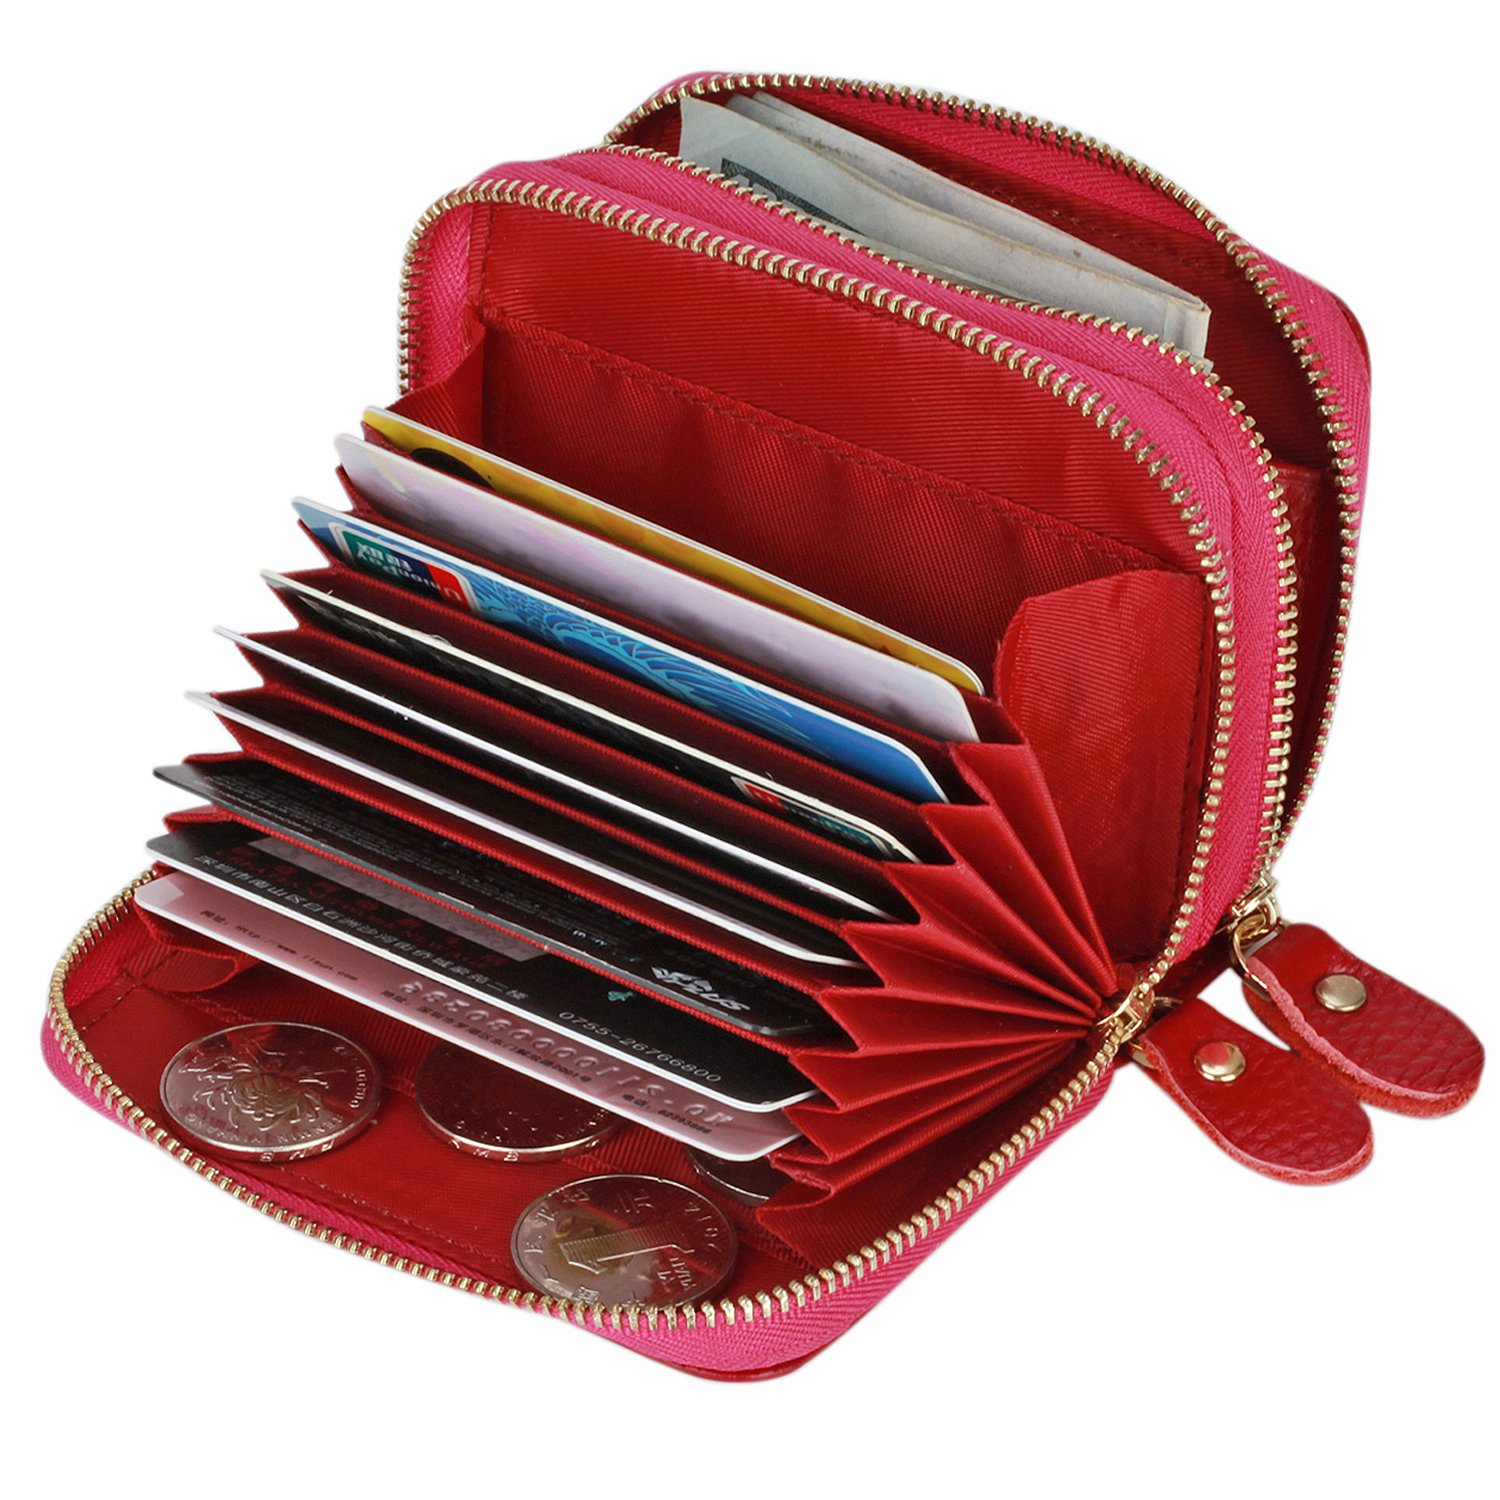 Accordion Wallet RFID Leather Card Wallet for Women Credit Card Holder